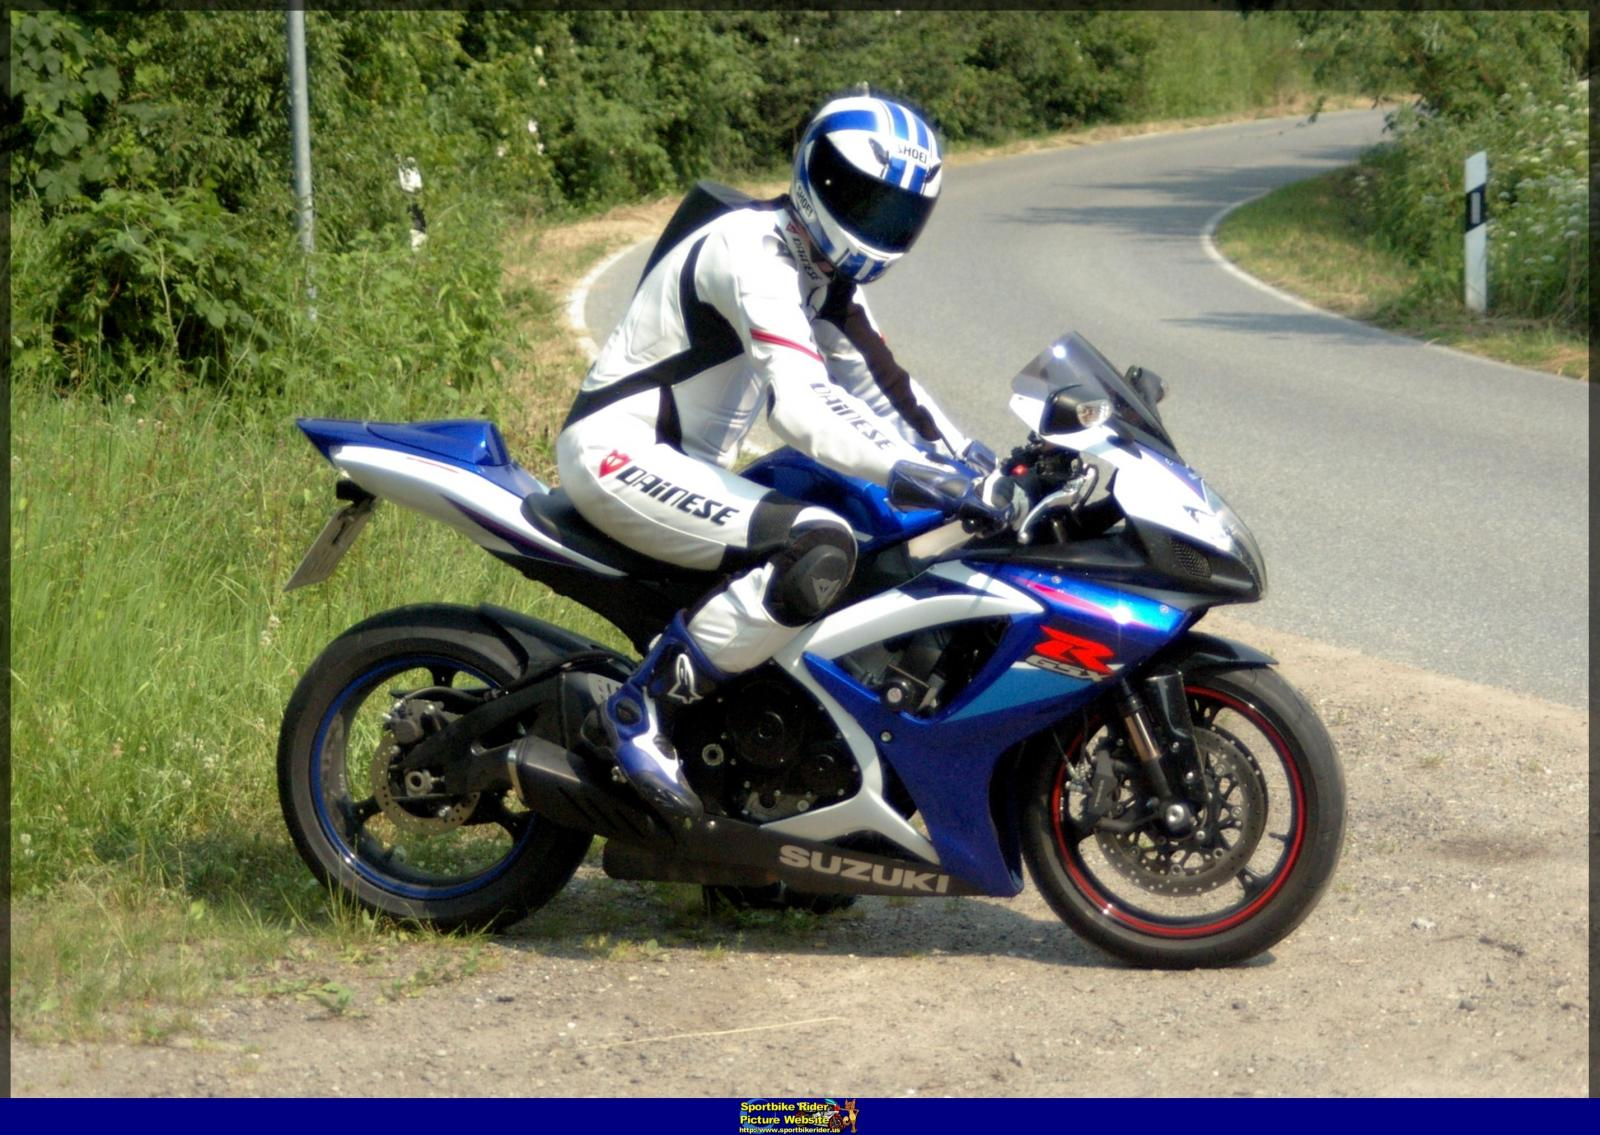 2007 suzuki gsxr 750 - photo #10